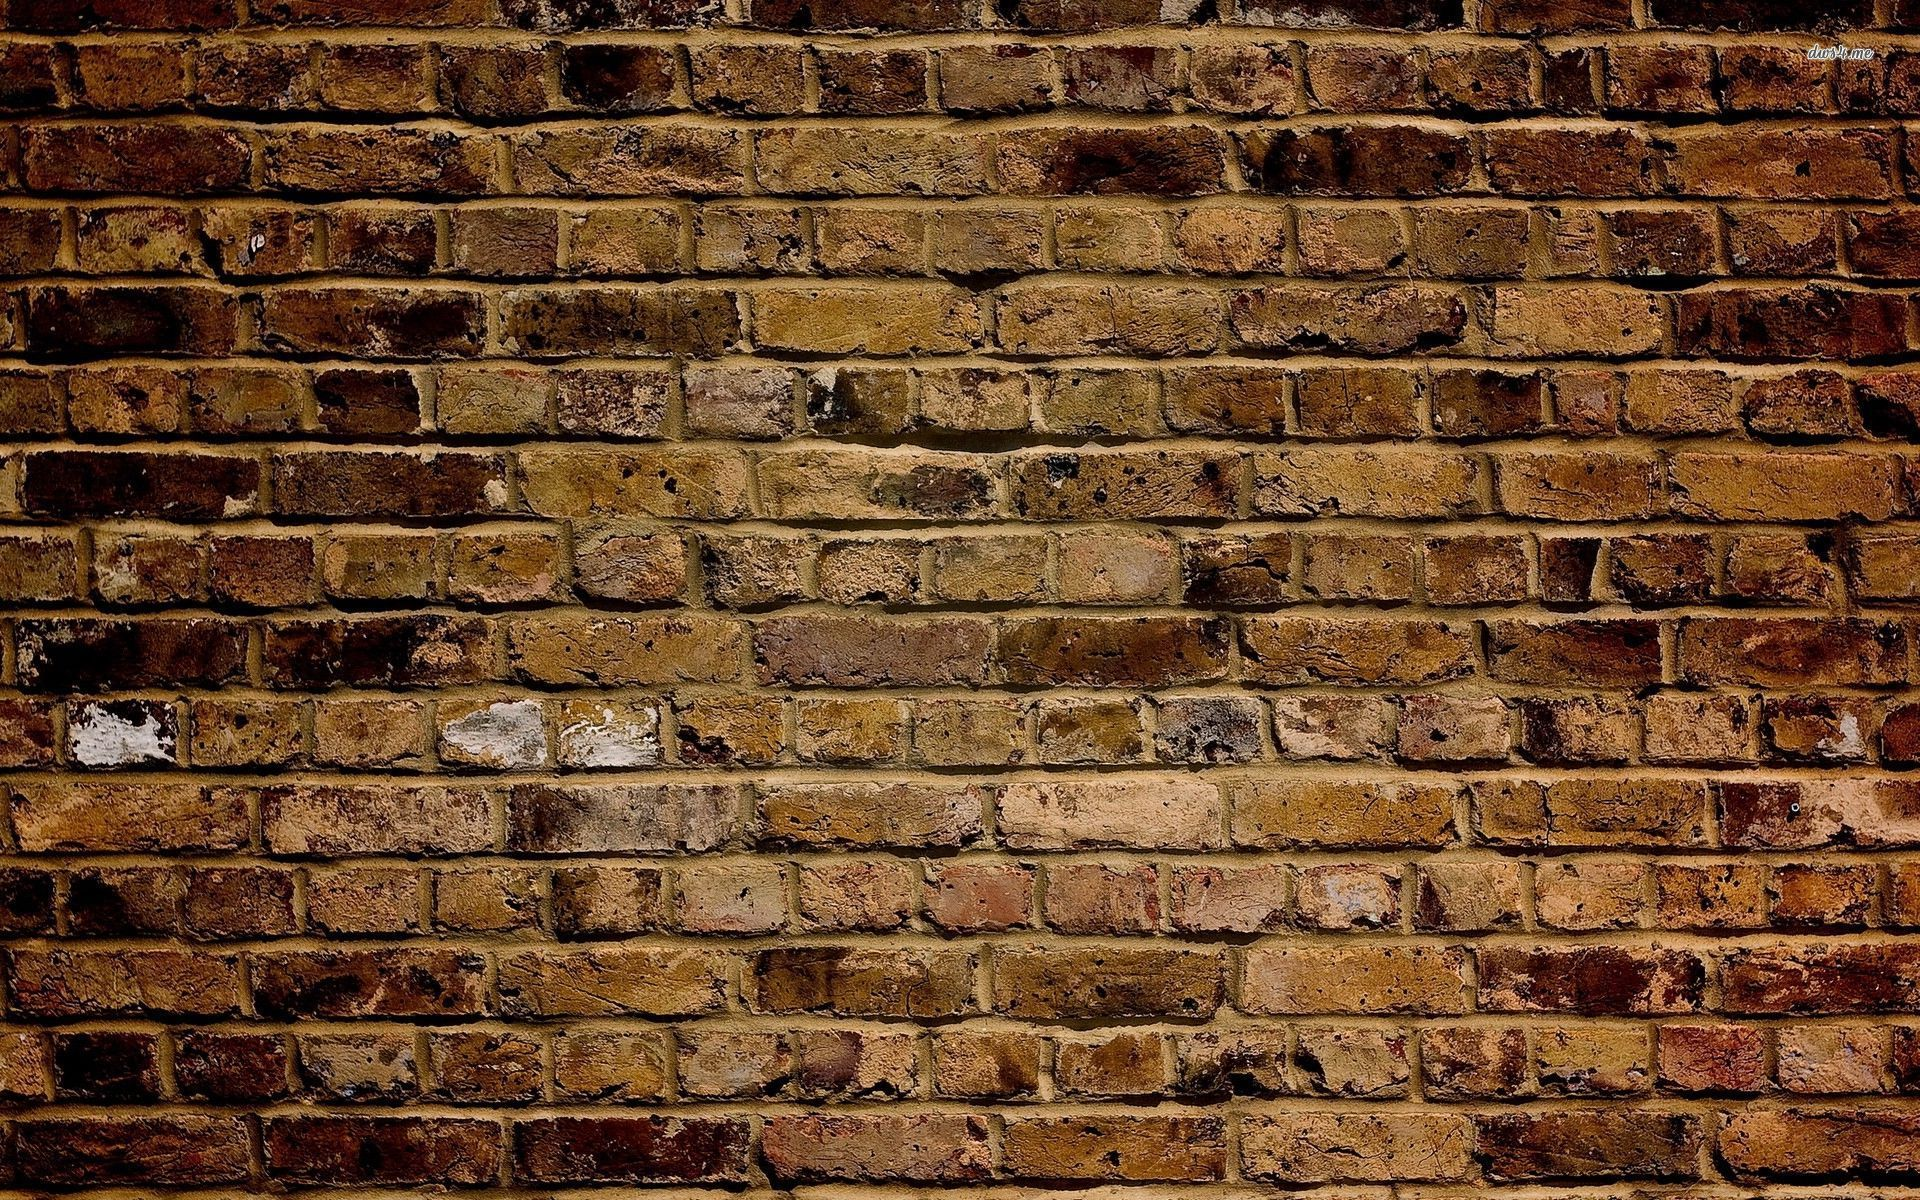 Brick Wall Wallpaper 2560x1600 More46 Background Brick Wall Jpg 1920x1200